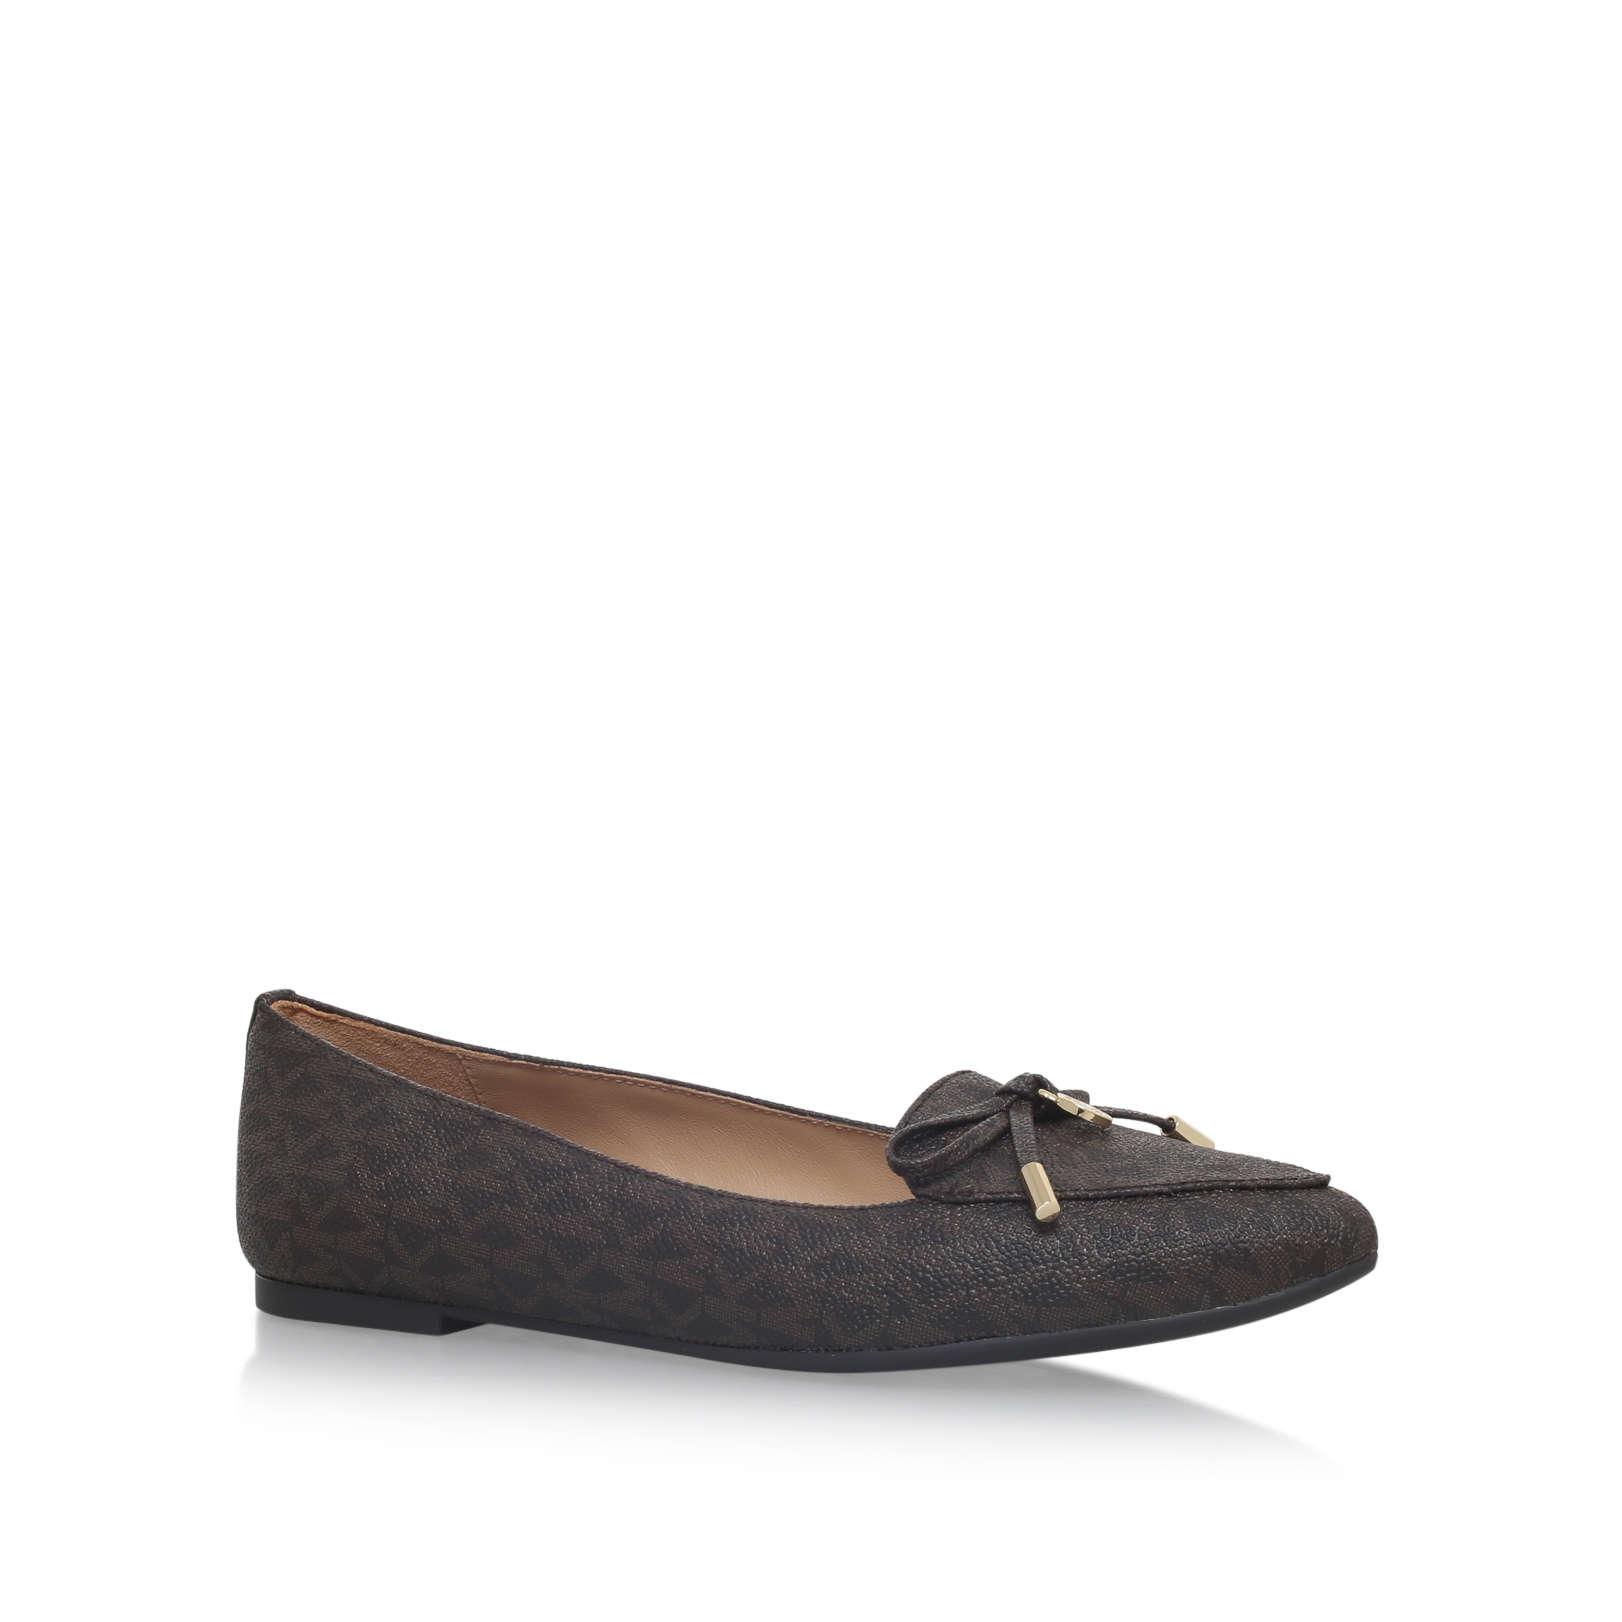 43ae3621ebec20 Find every shop in the world selling ted baker imme ballet pumps ...